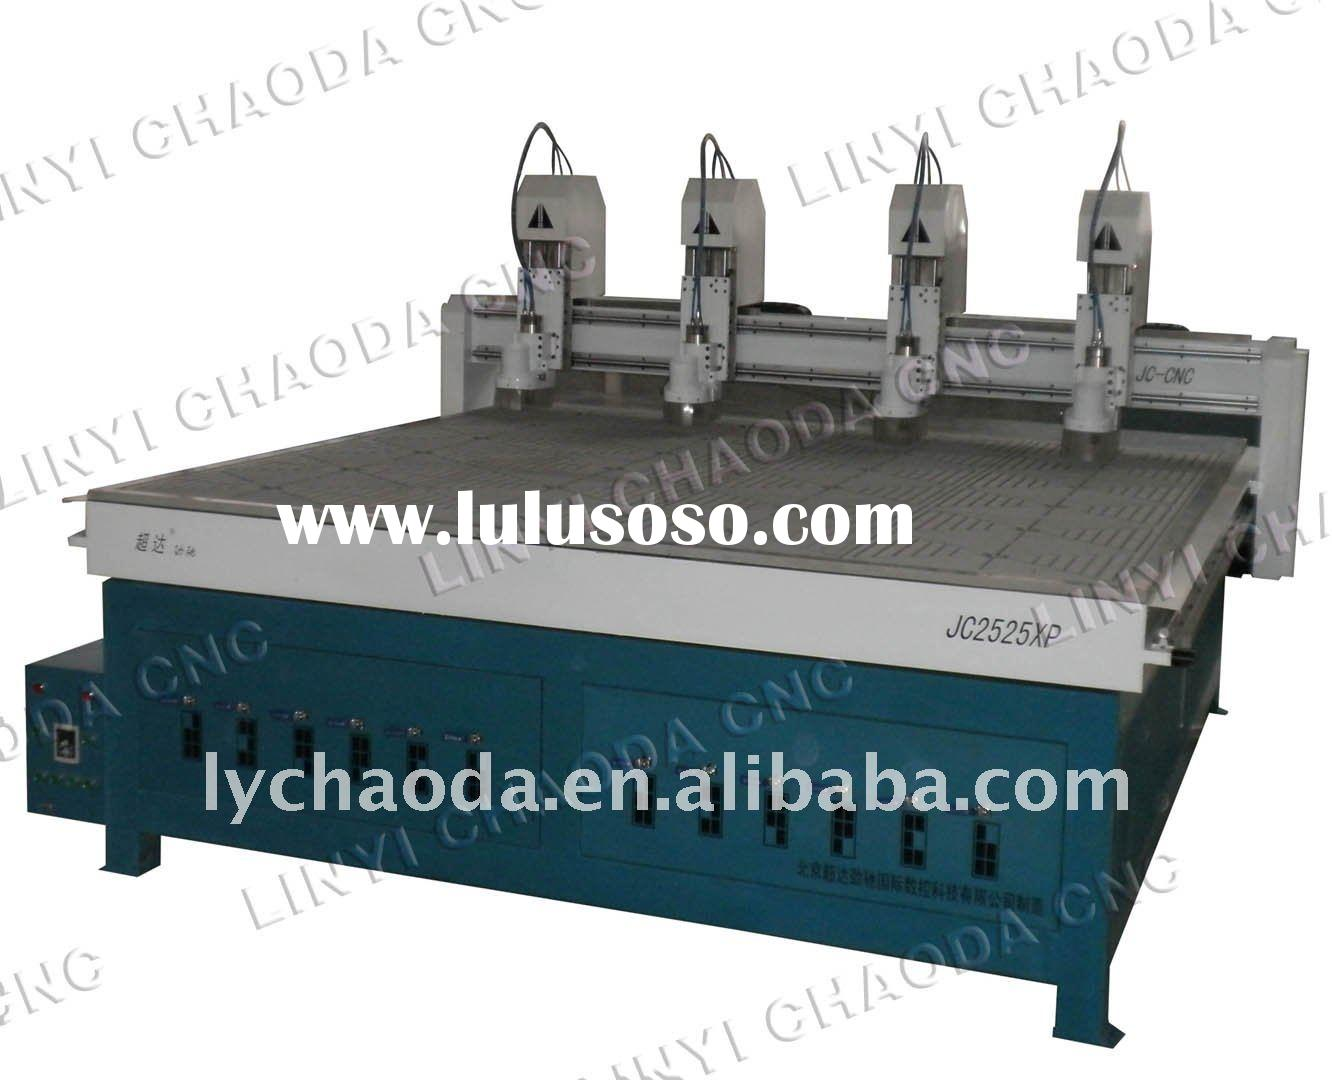 wood carving machine 4 spindles wood carving machine cnc router cnc ...